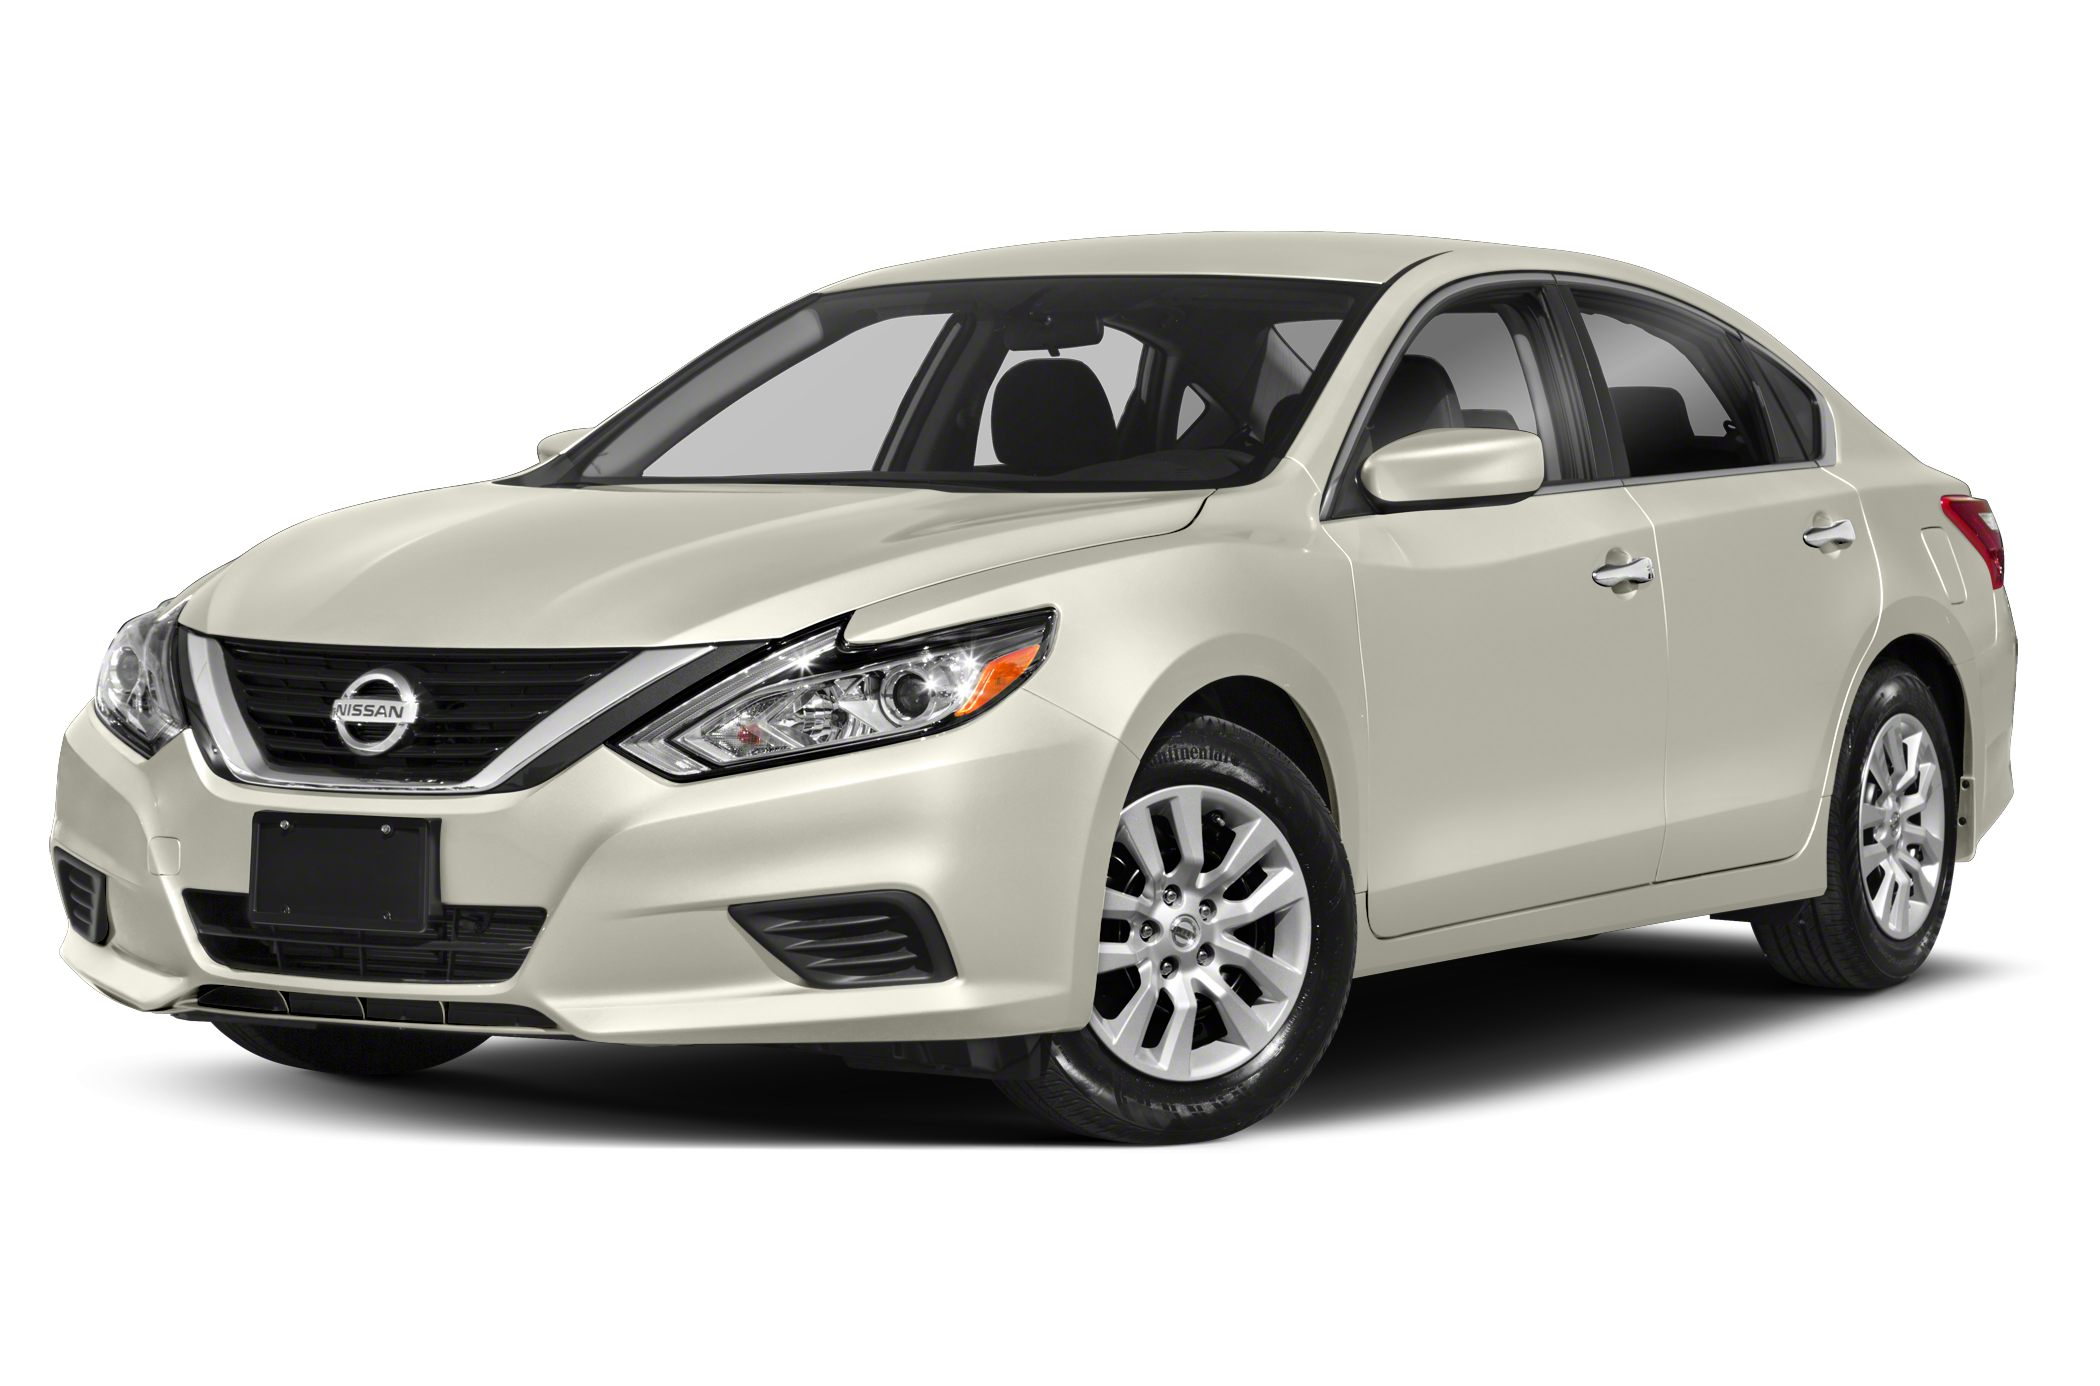 2018 Nissan Altima Styles Features Highlights